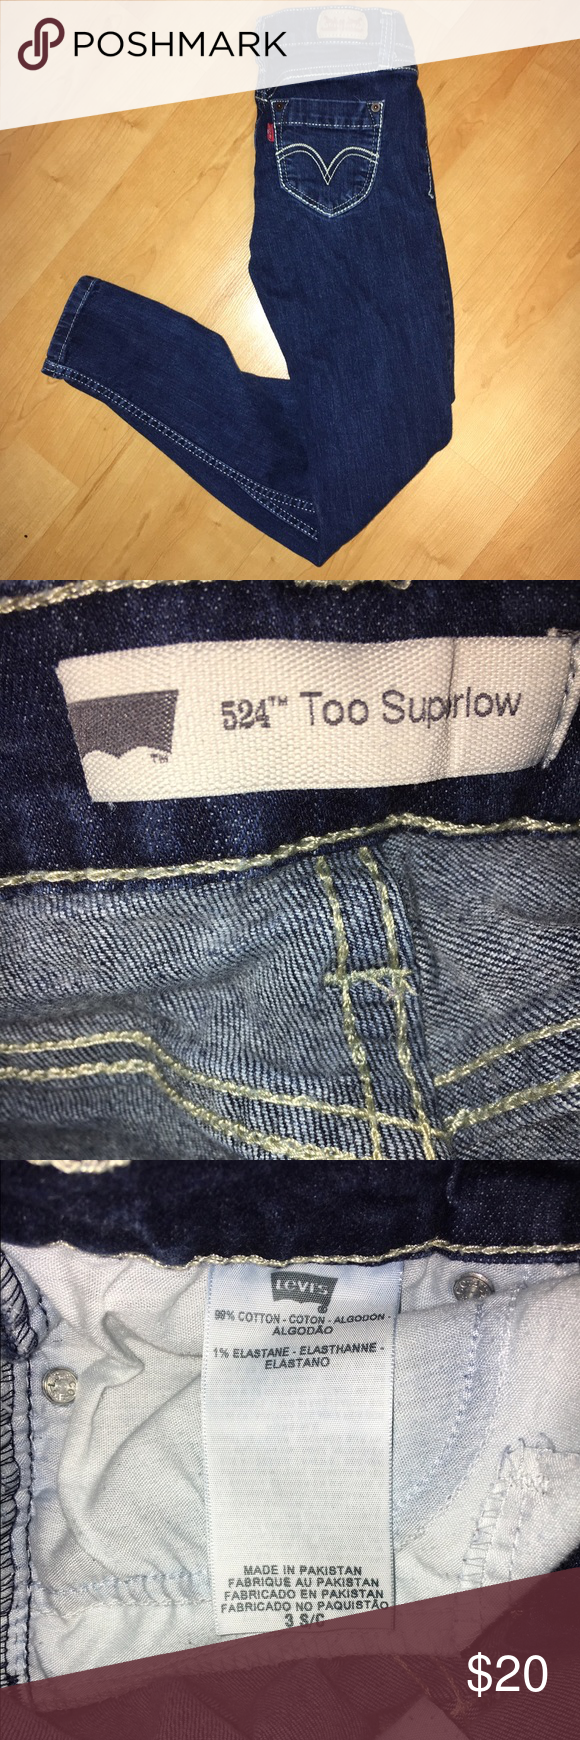 Levi's 524 Too Superlow Jeans Levi's 524 Too Superlow skinny jeans in a medium/dark wash. In good condition. Size 3 short. Levi's Jeans Skinny